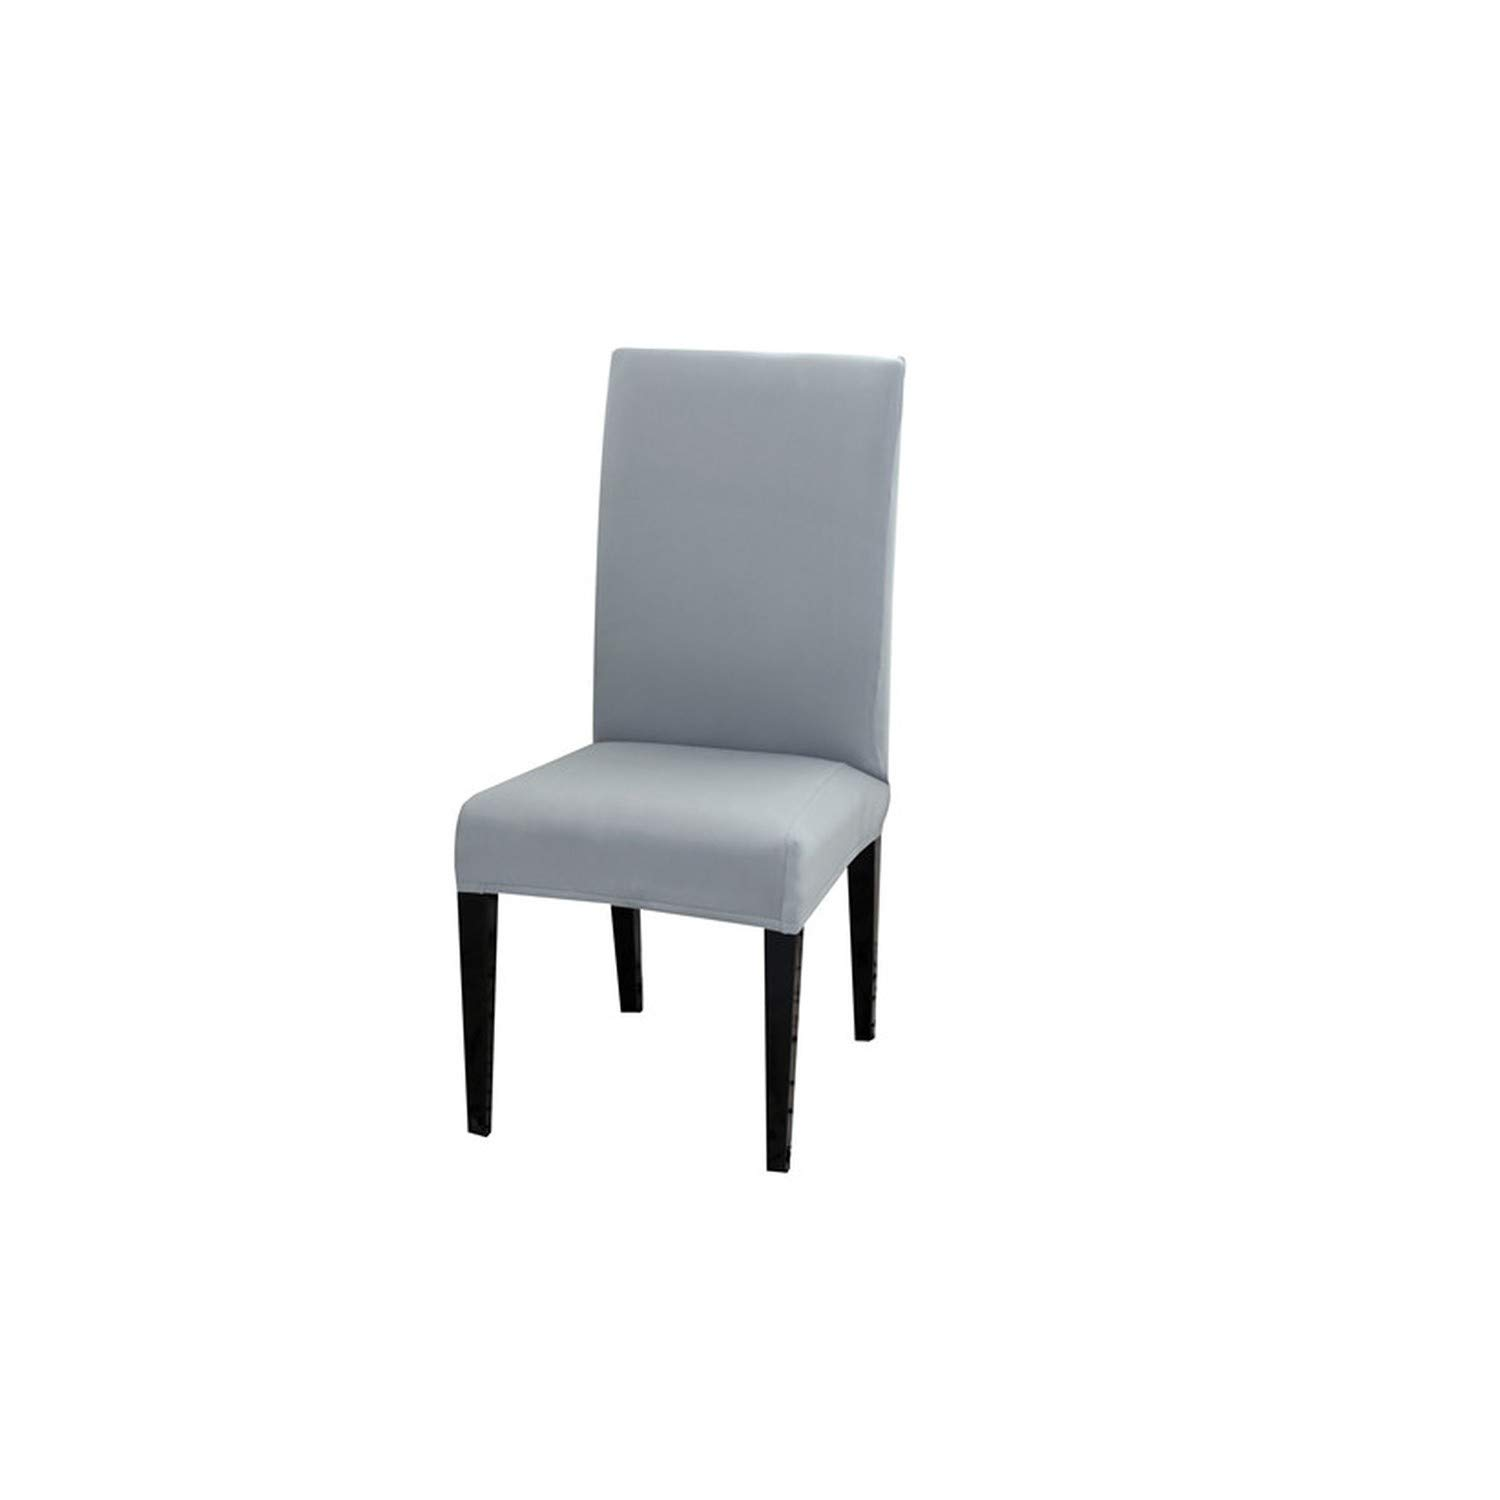 Solid Color Spandex Chair Cover Stretch Elastic Slipcovers Chair Covers for Dining Room Kitchen Wedding Banquet Hotel funda sill,Color 10,Universal Size